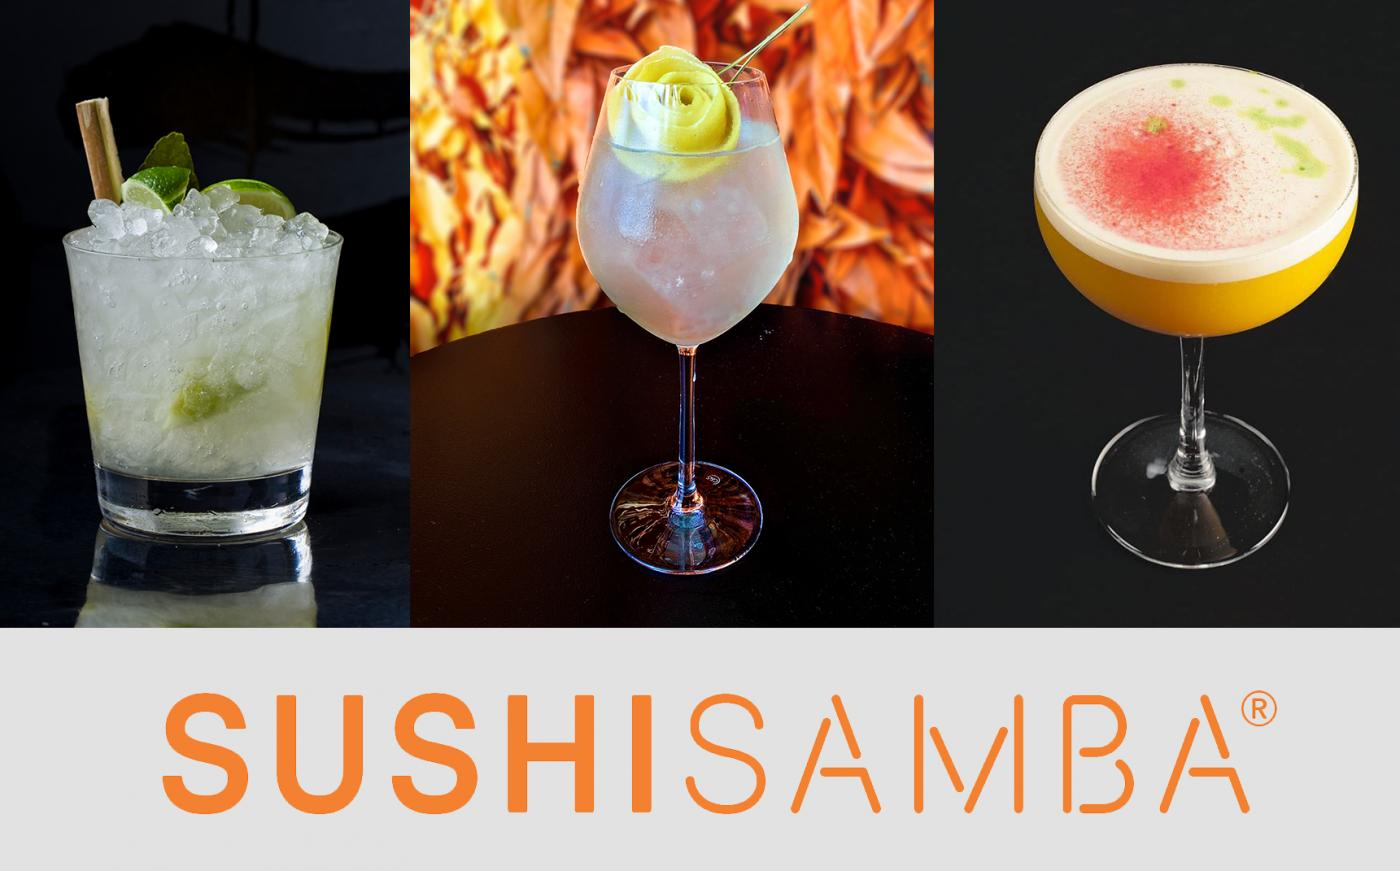 Sushisamba, cocktail, thecocktailguy, luxury cocktail, Alternative, guyswithtattoos